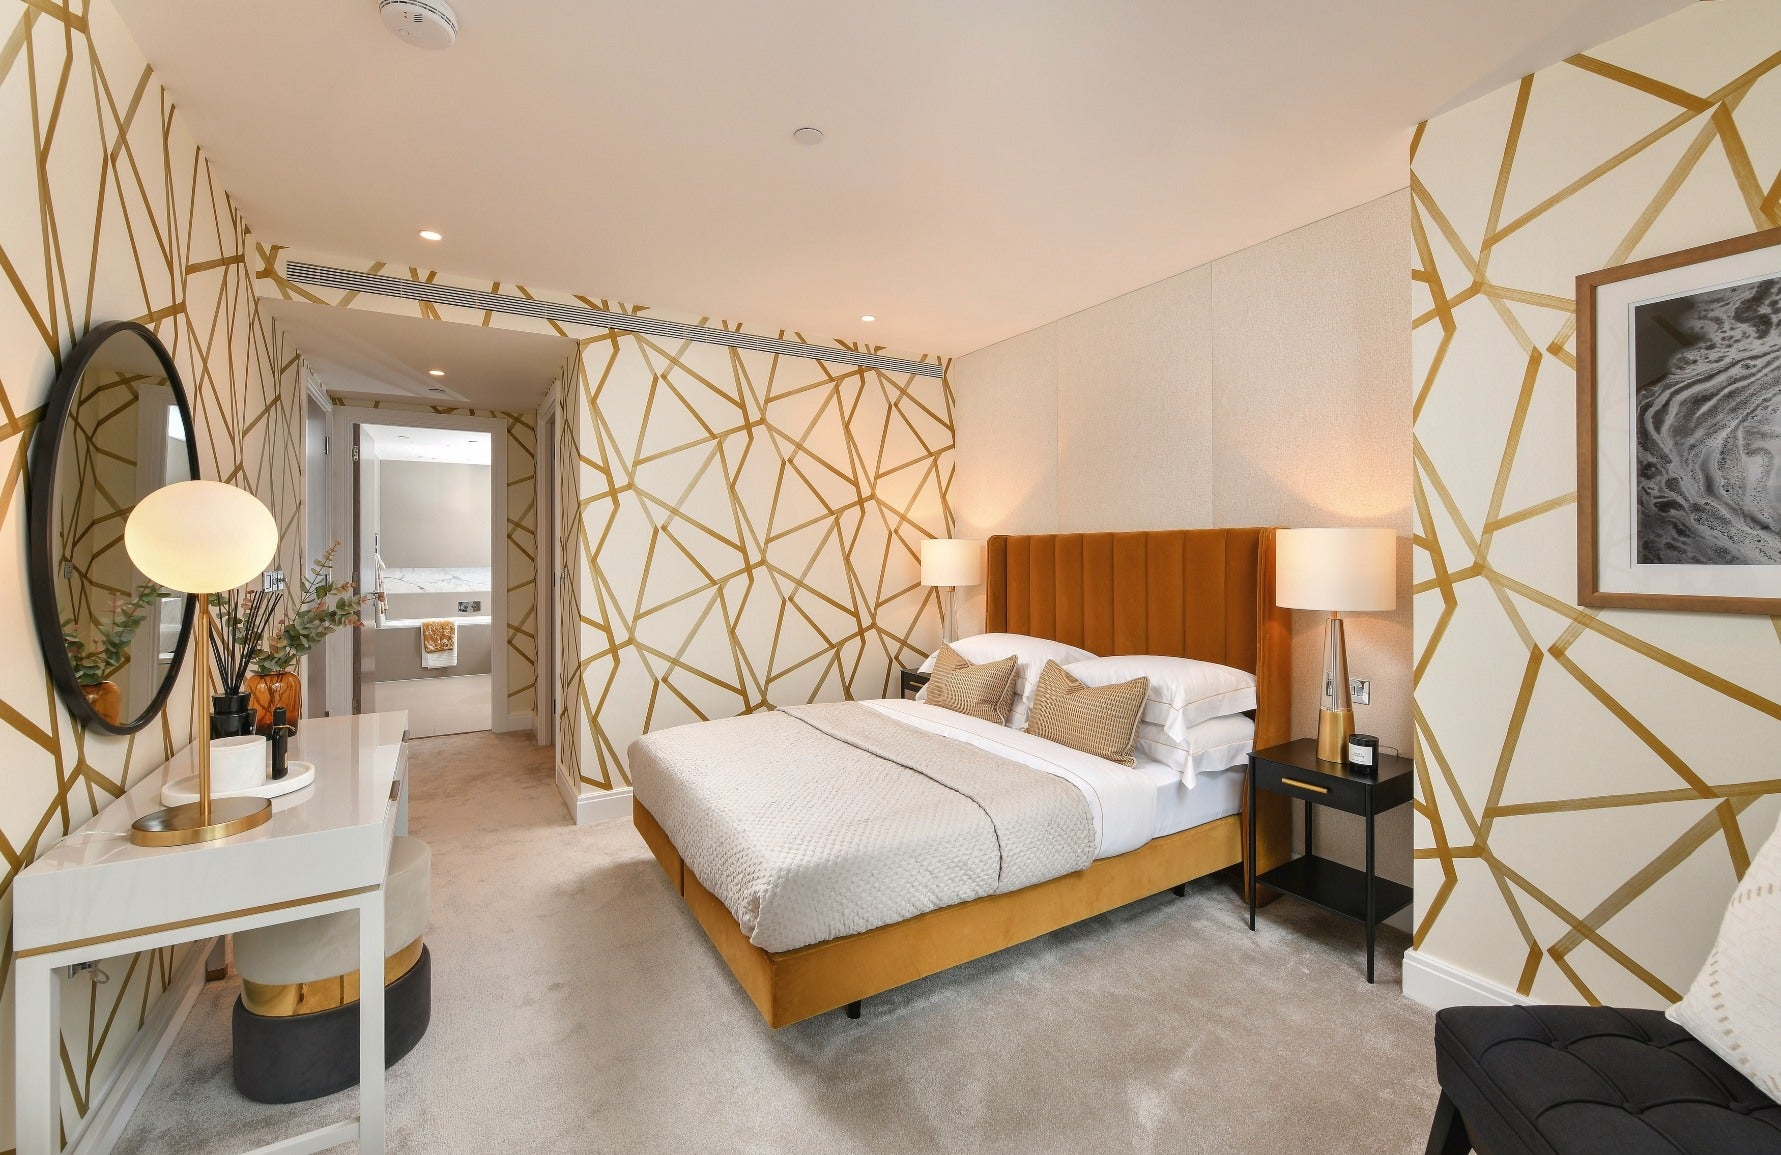 Forms of Geometric Shapes & Patterns In Interior Design   The Dumont by St James   LuxDeco.com Style Guide